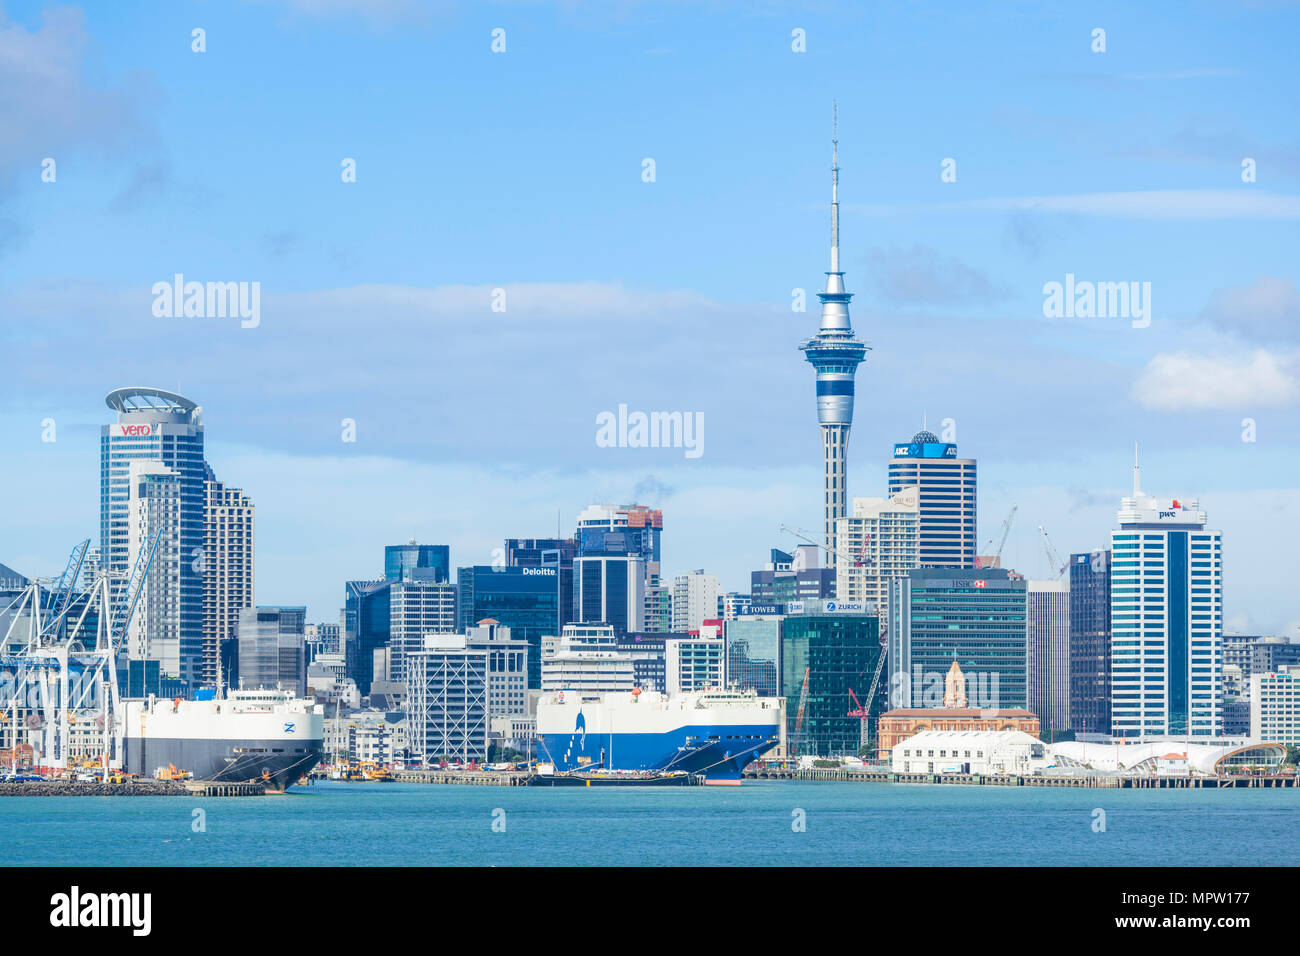 New Zealand Auckland New Zealand North Island Auckland skyline Waitemata Hafen cbd Sky Tower und der Werft Gegend der Waterfront Auckland, NZ Stockbild